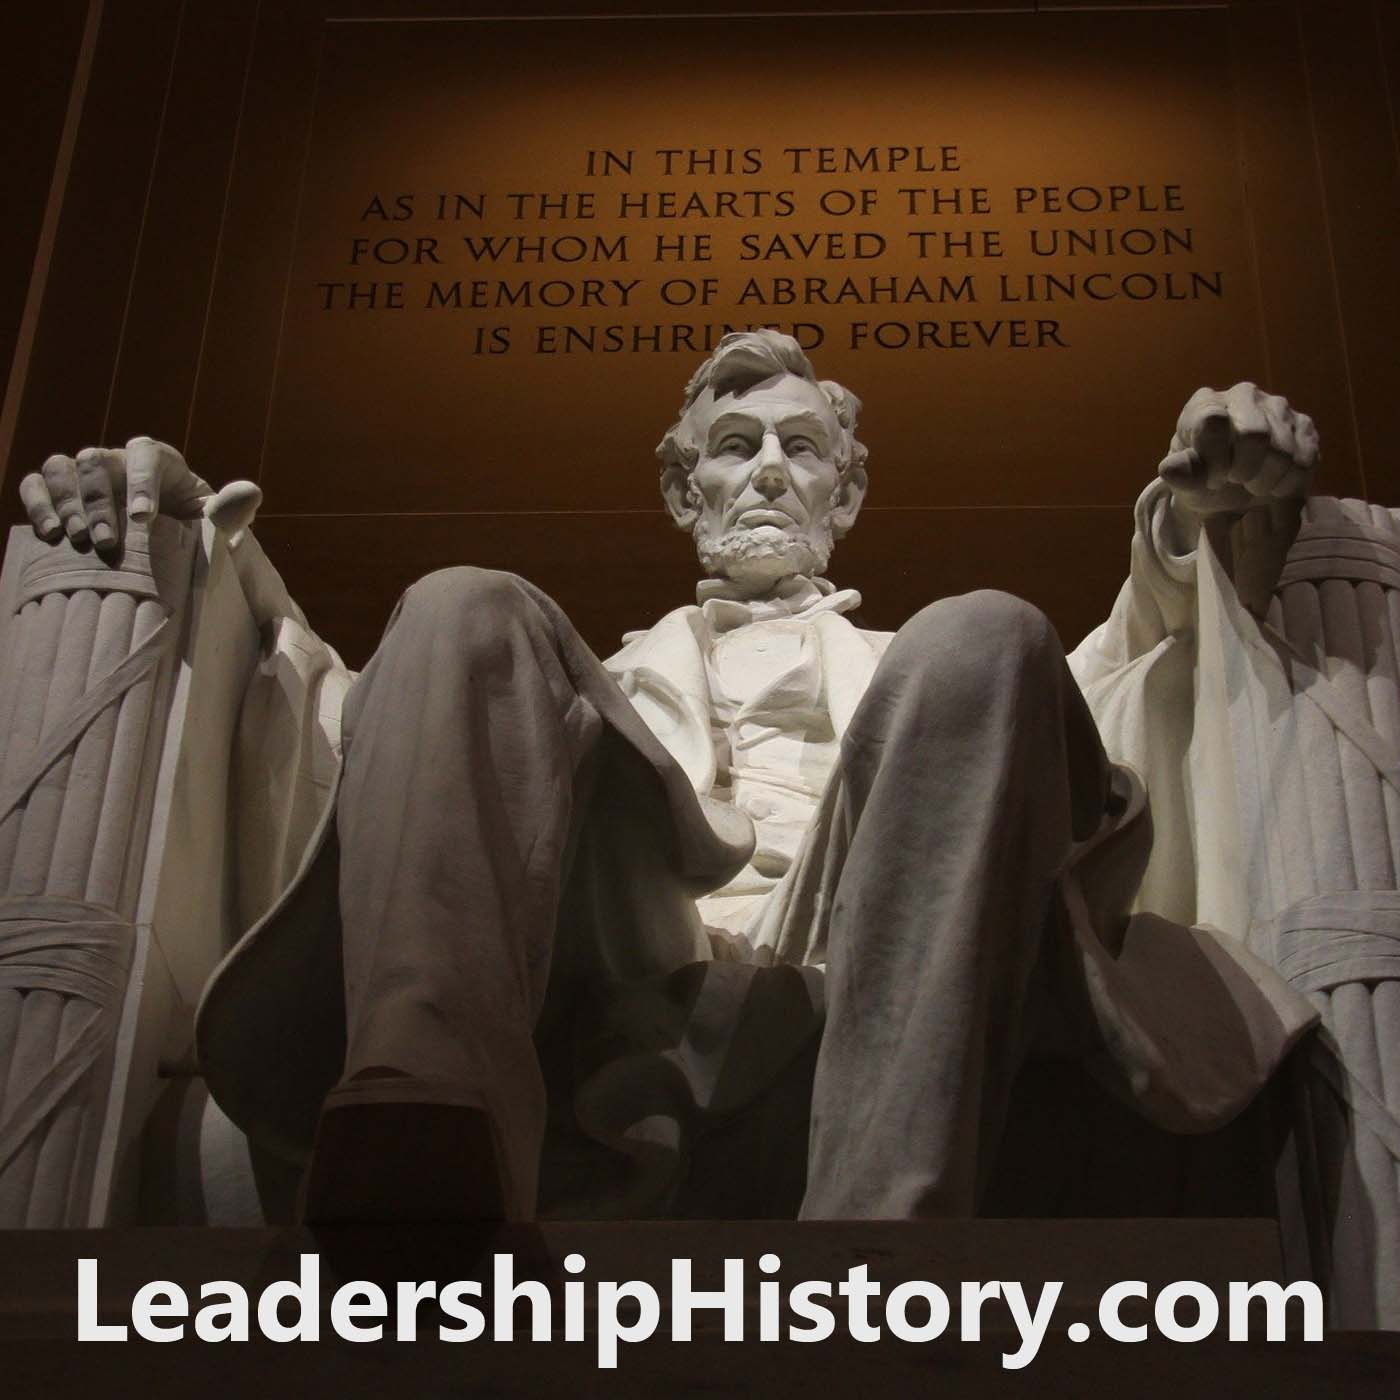 LeadershipHistory.com